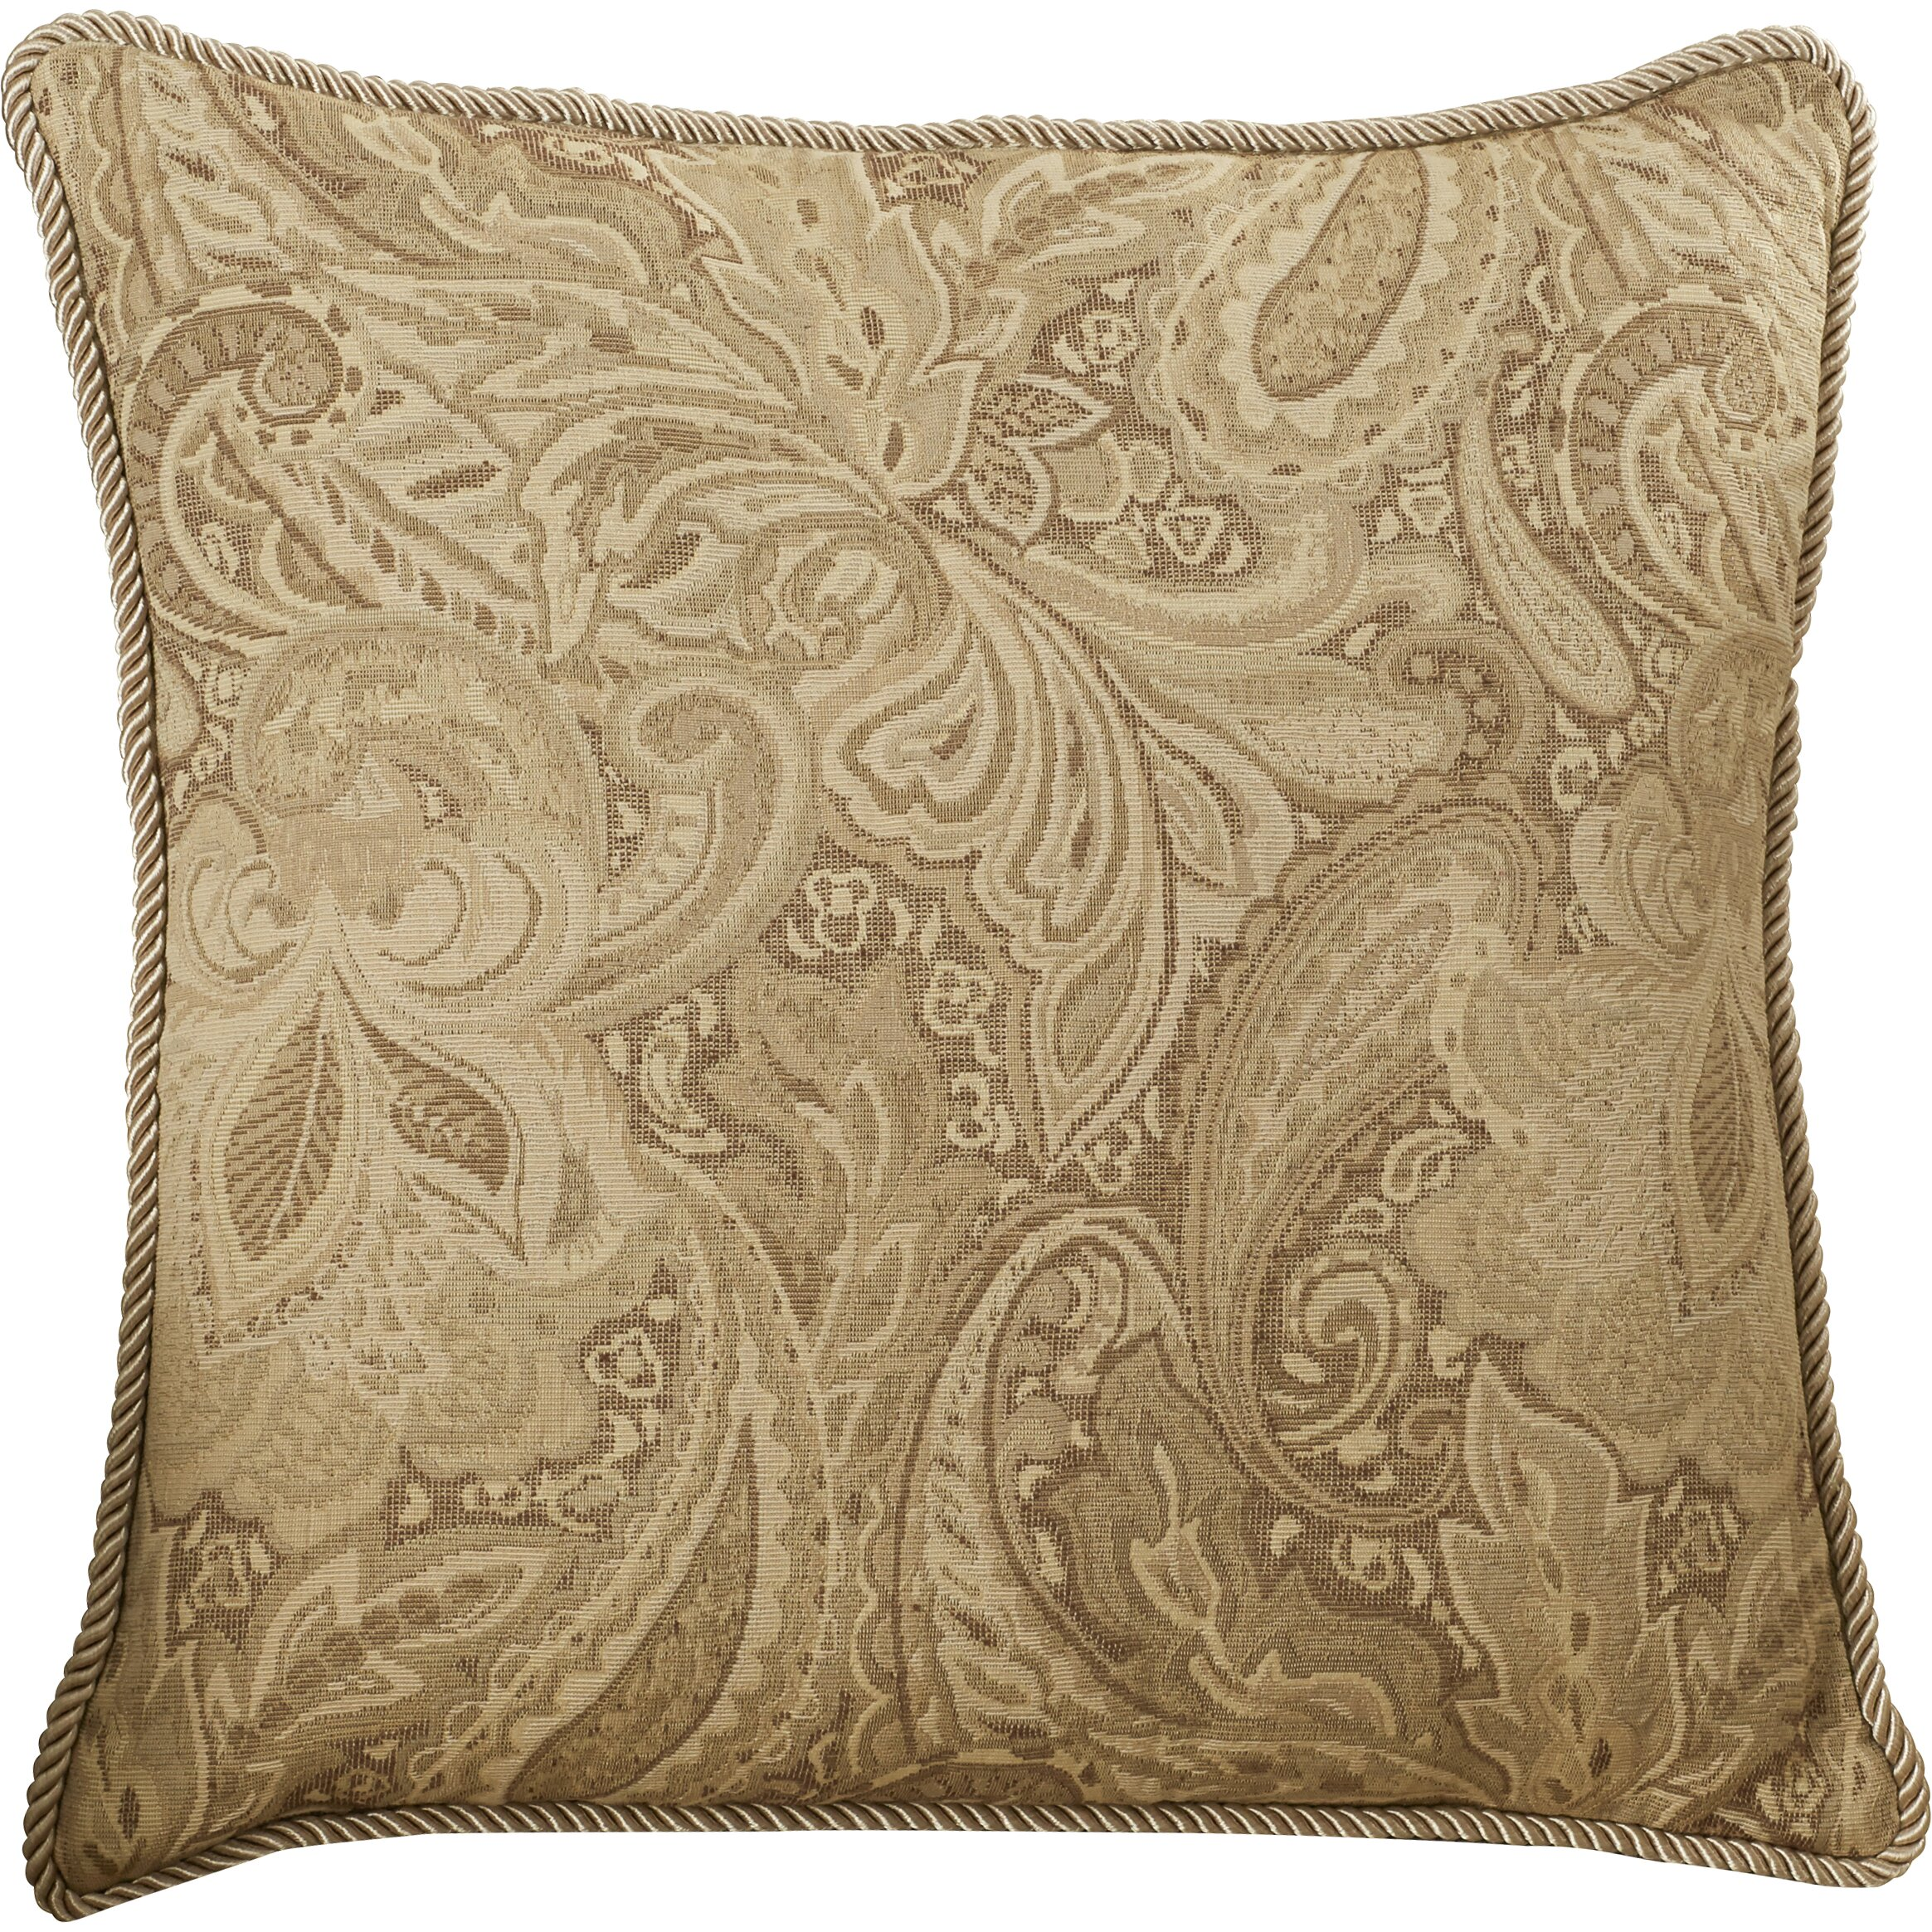 Jacquard Decorative Pillows : Charlton Home Drayton Jacquard Paisley Throw Pillow & Reviews Wayfair